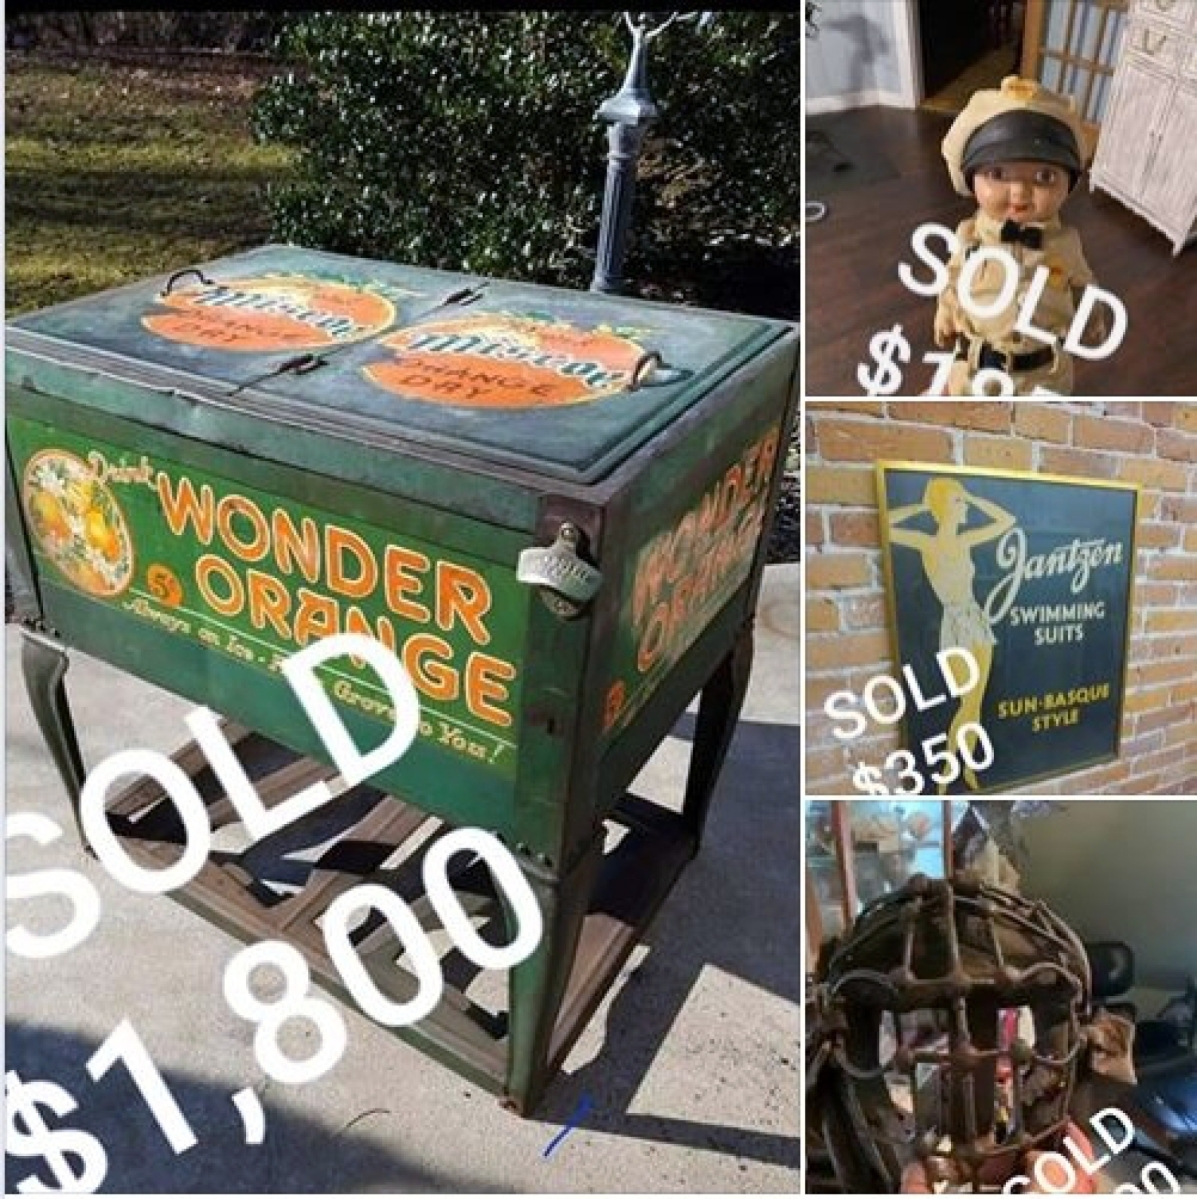 As of 8:30 am on Thursday, May 14, Michael Lord, one of the administrators of the Brimfield Online Facebook group, had posted photos of four things that sellers in the group had sold since it opened.